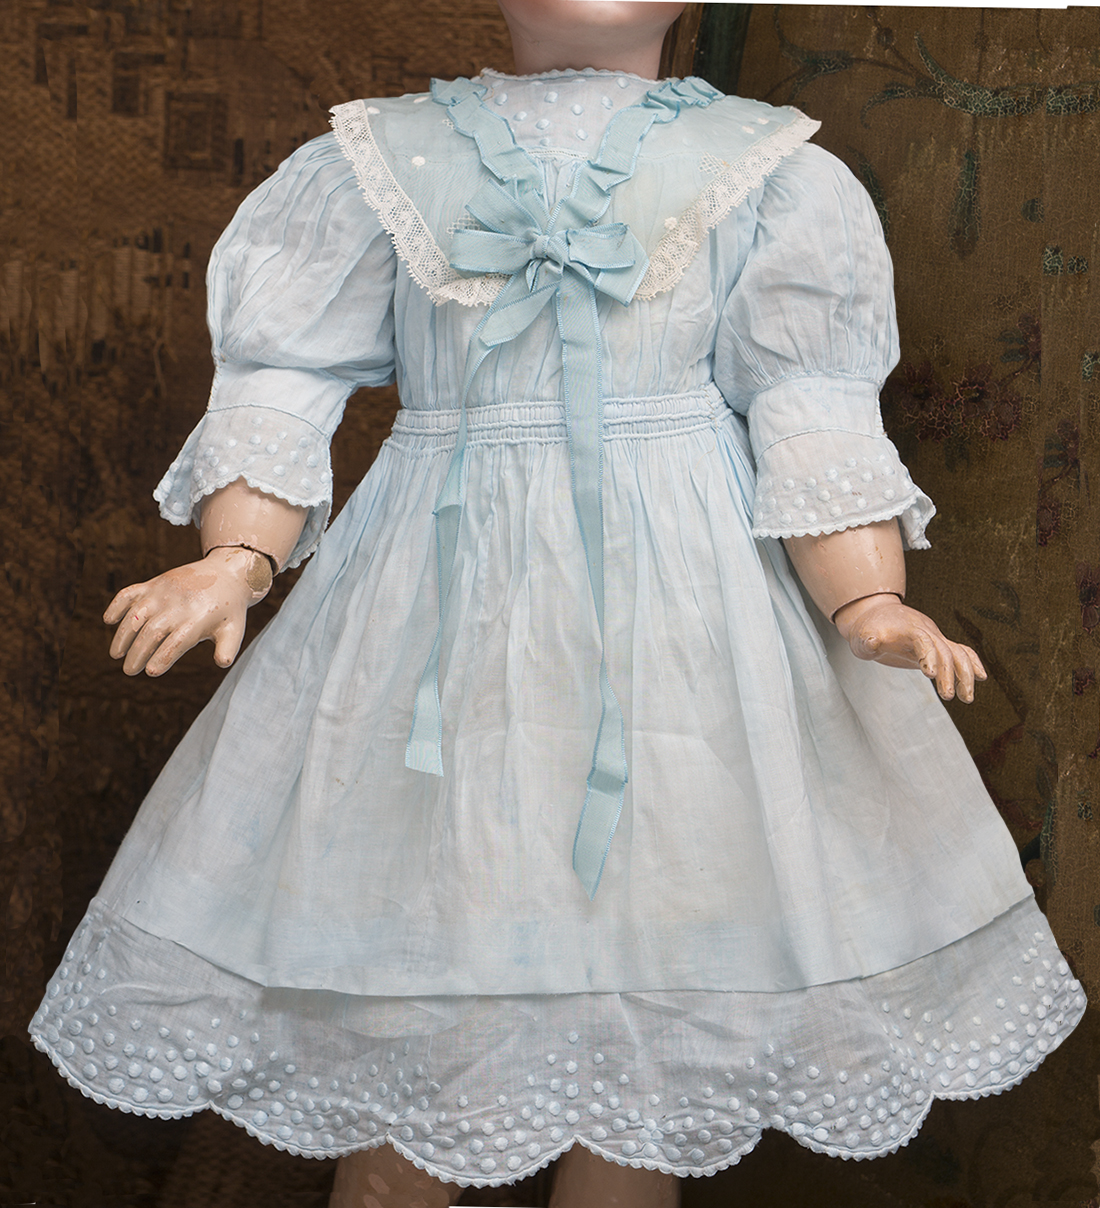 Antique doll dress and chemise